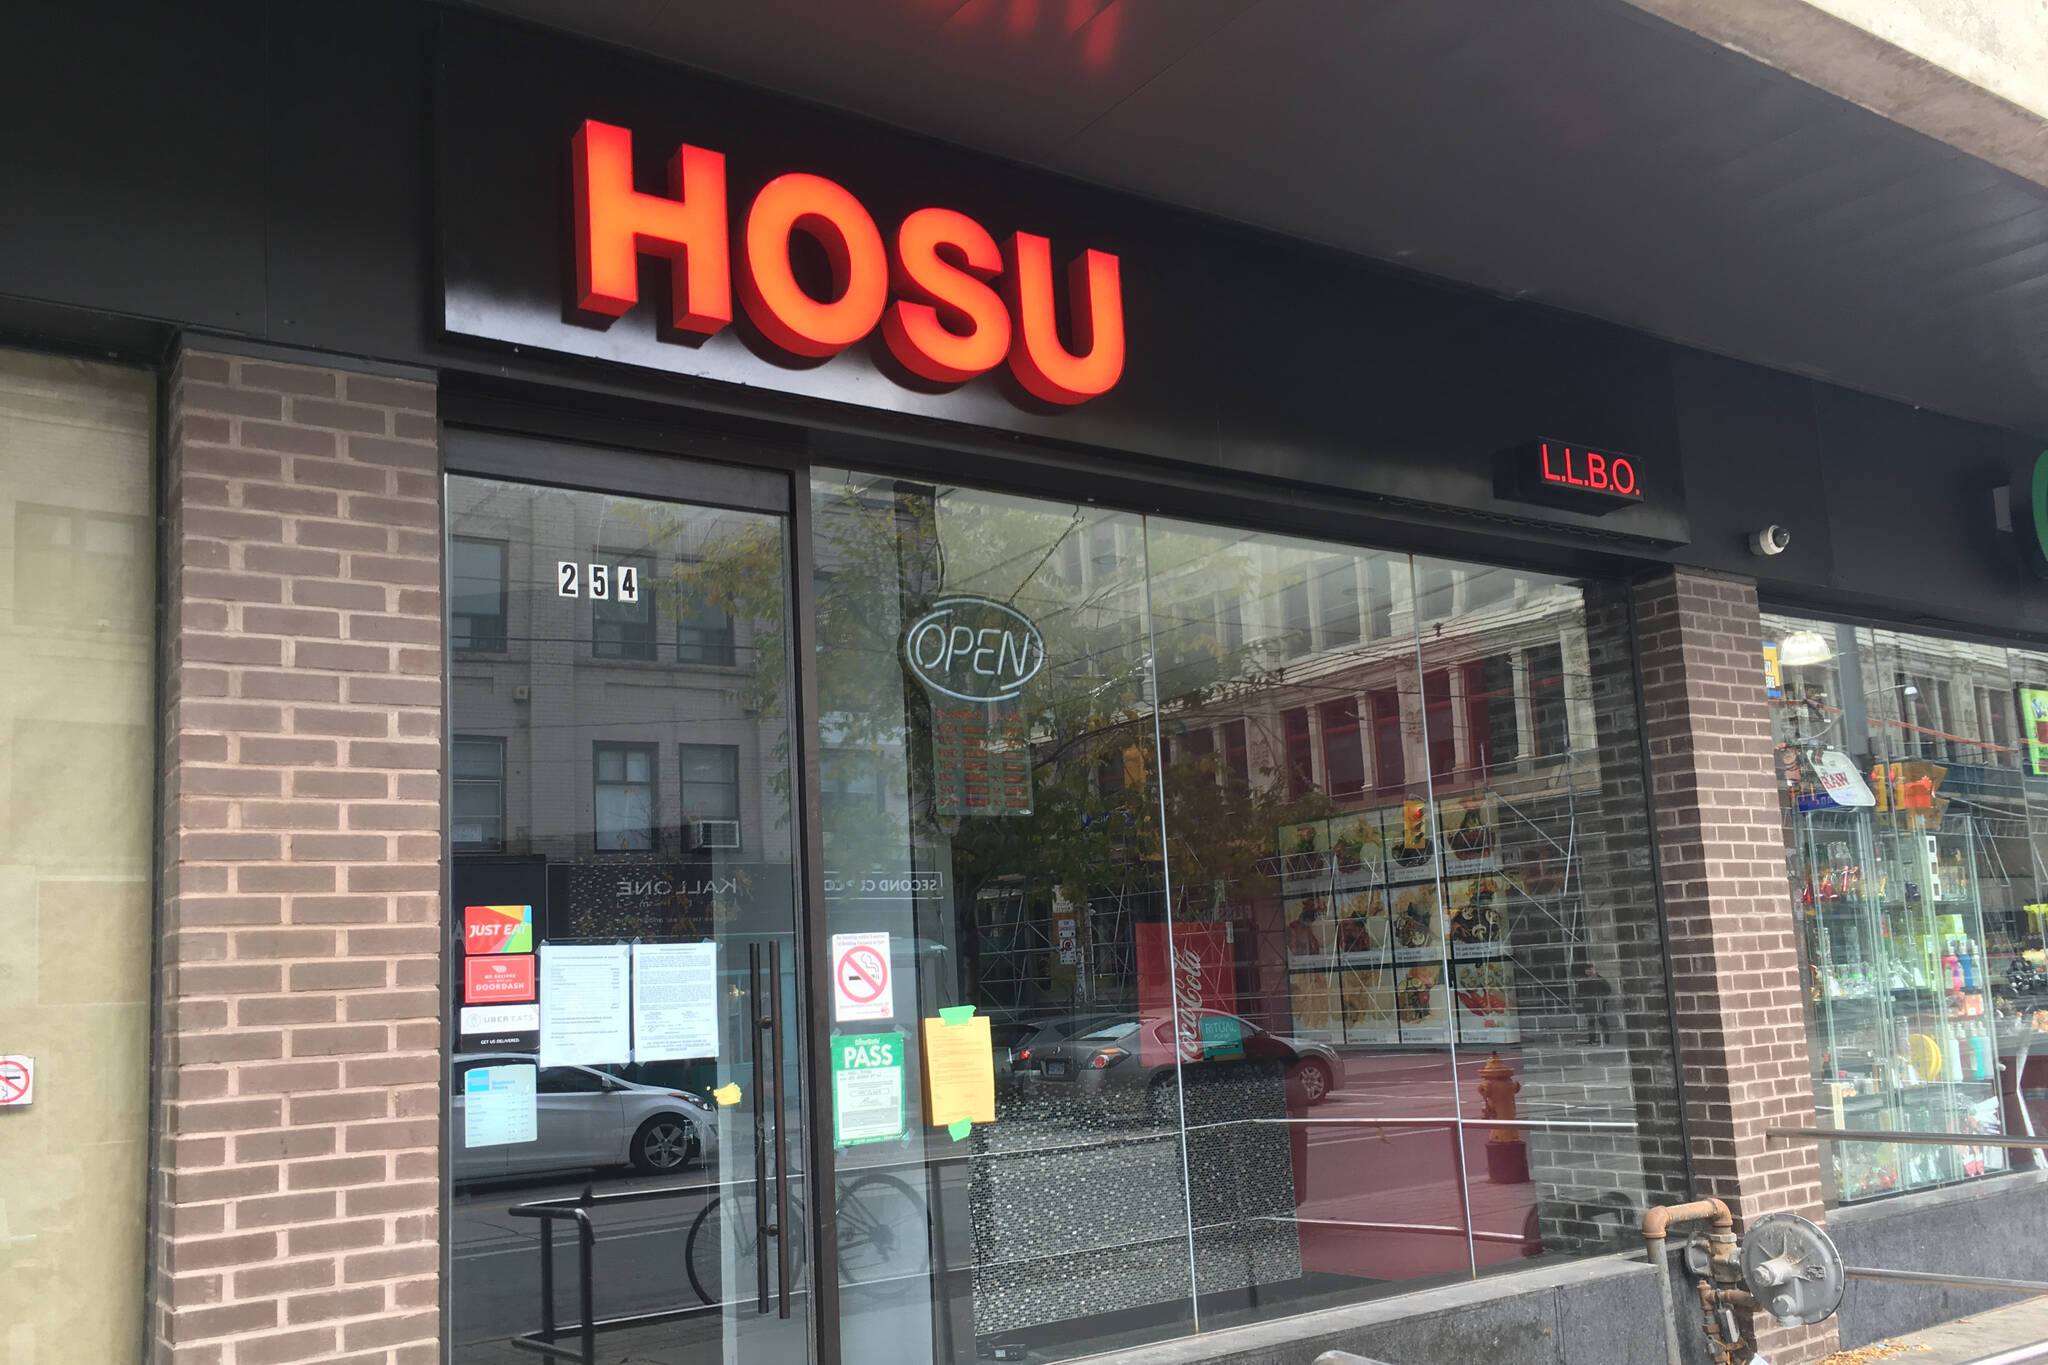 Hosu restaurant closed